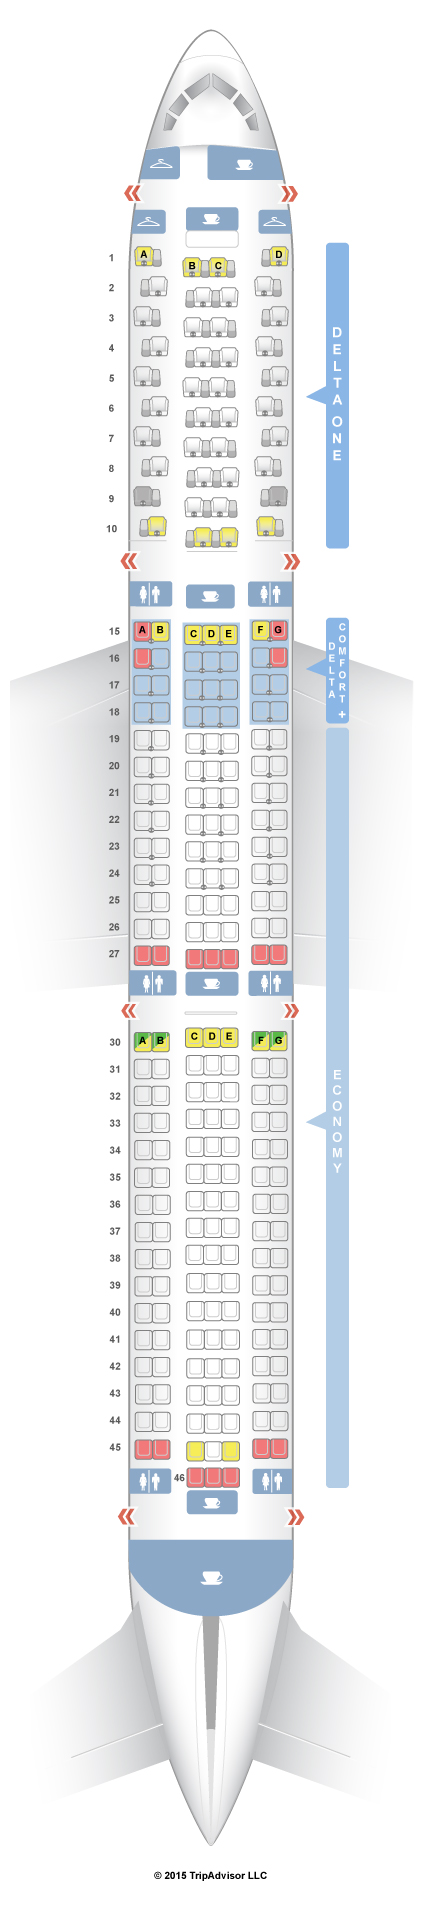 Delta Boeing Seat Map on